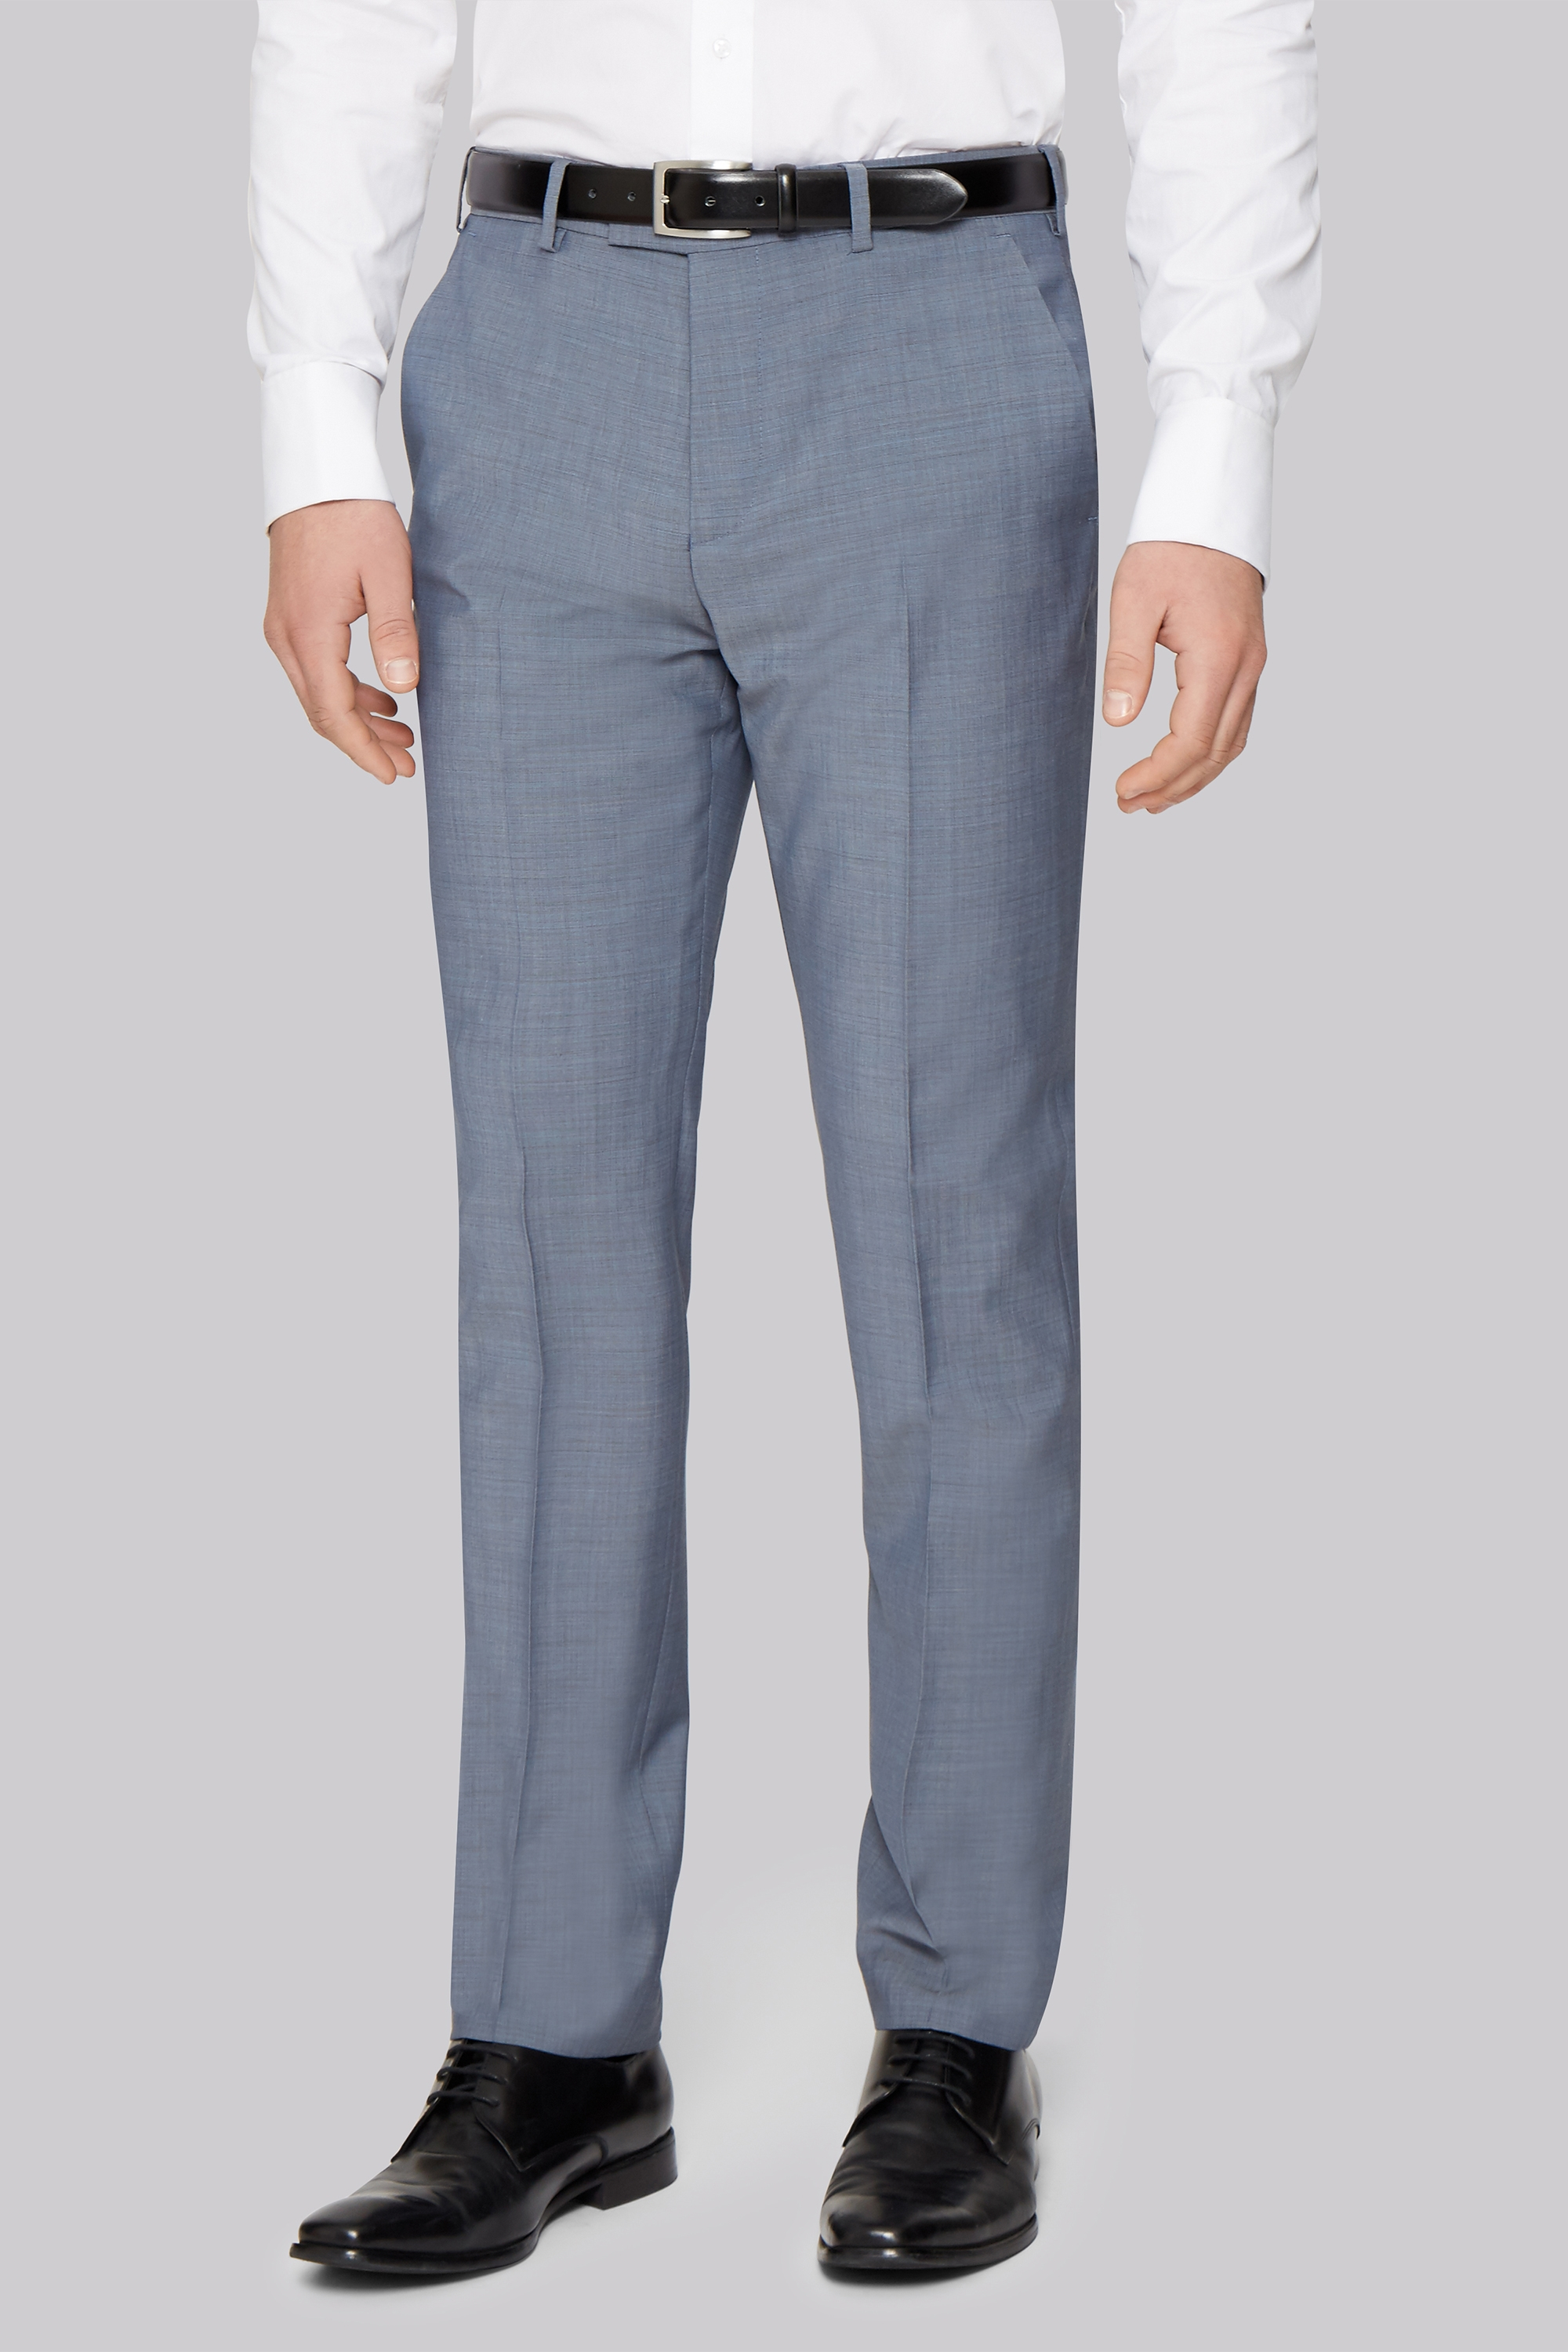 Shop for men's blue trousers at taradsod.tk Next day delivery and free returns available. s of products online. Browse blue trousers for men online!